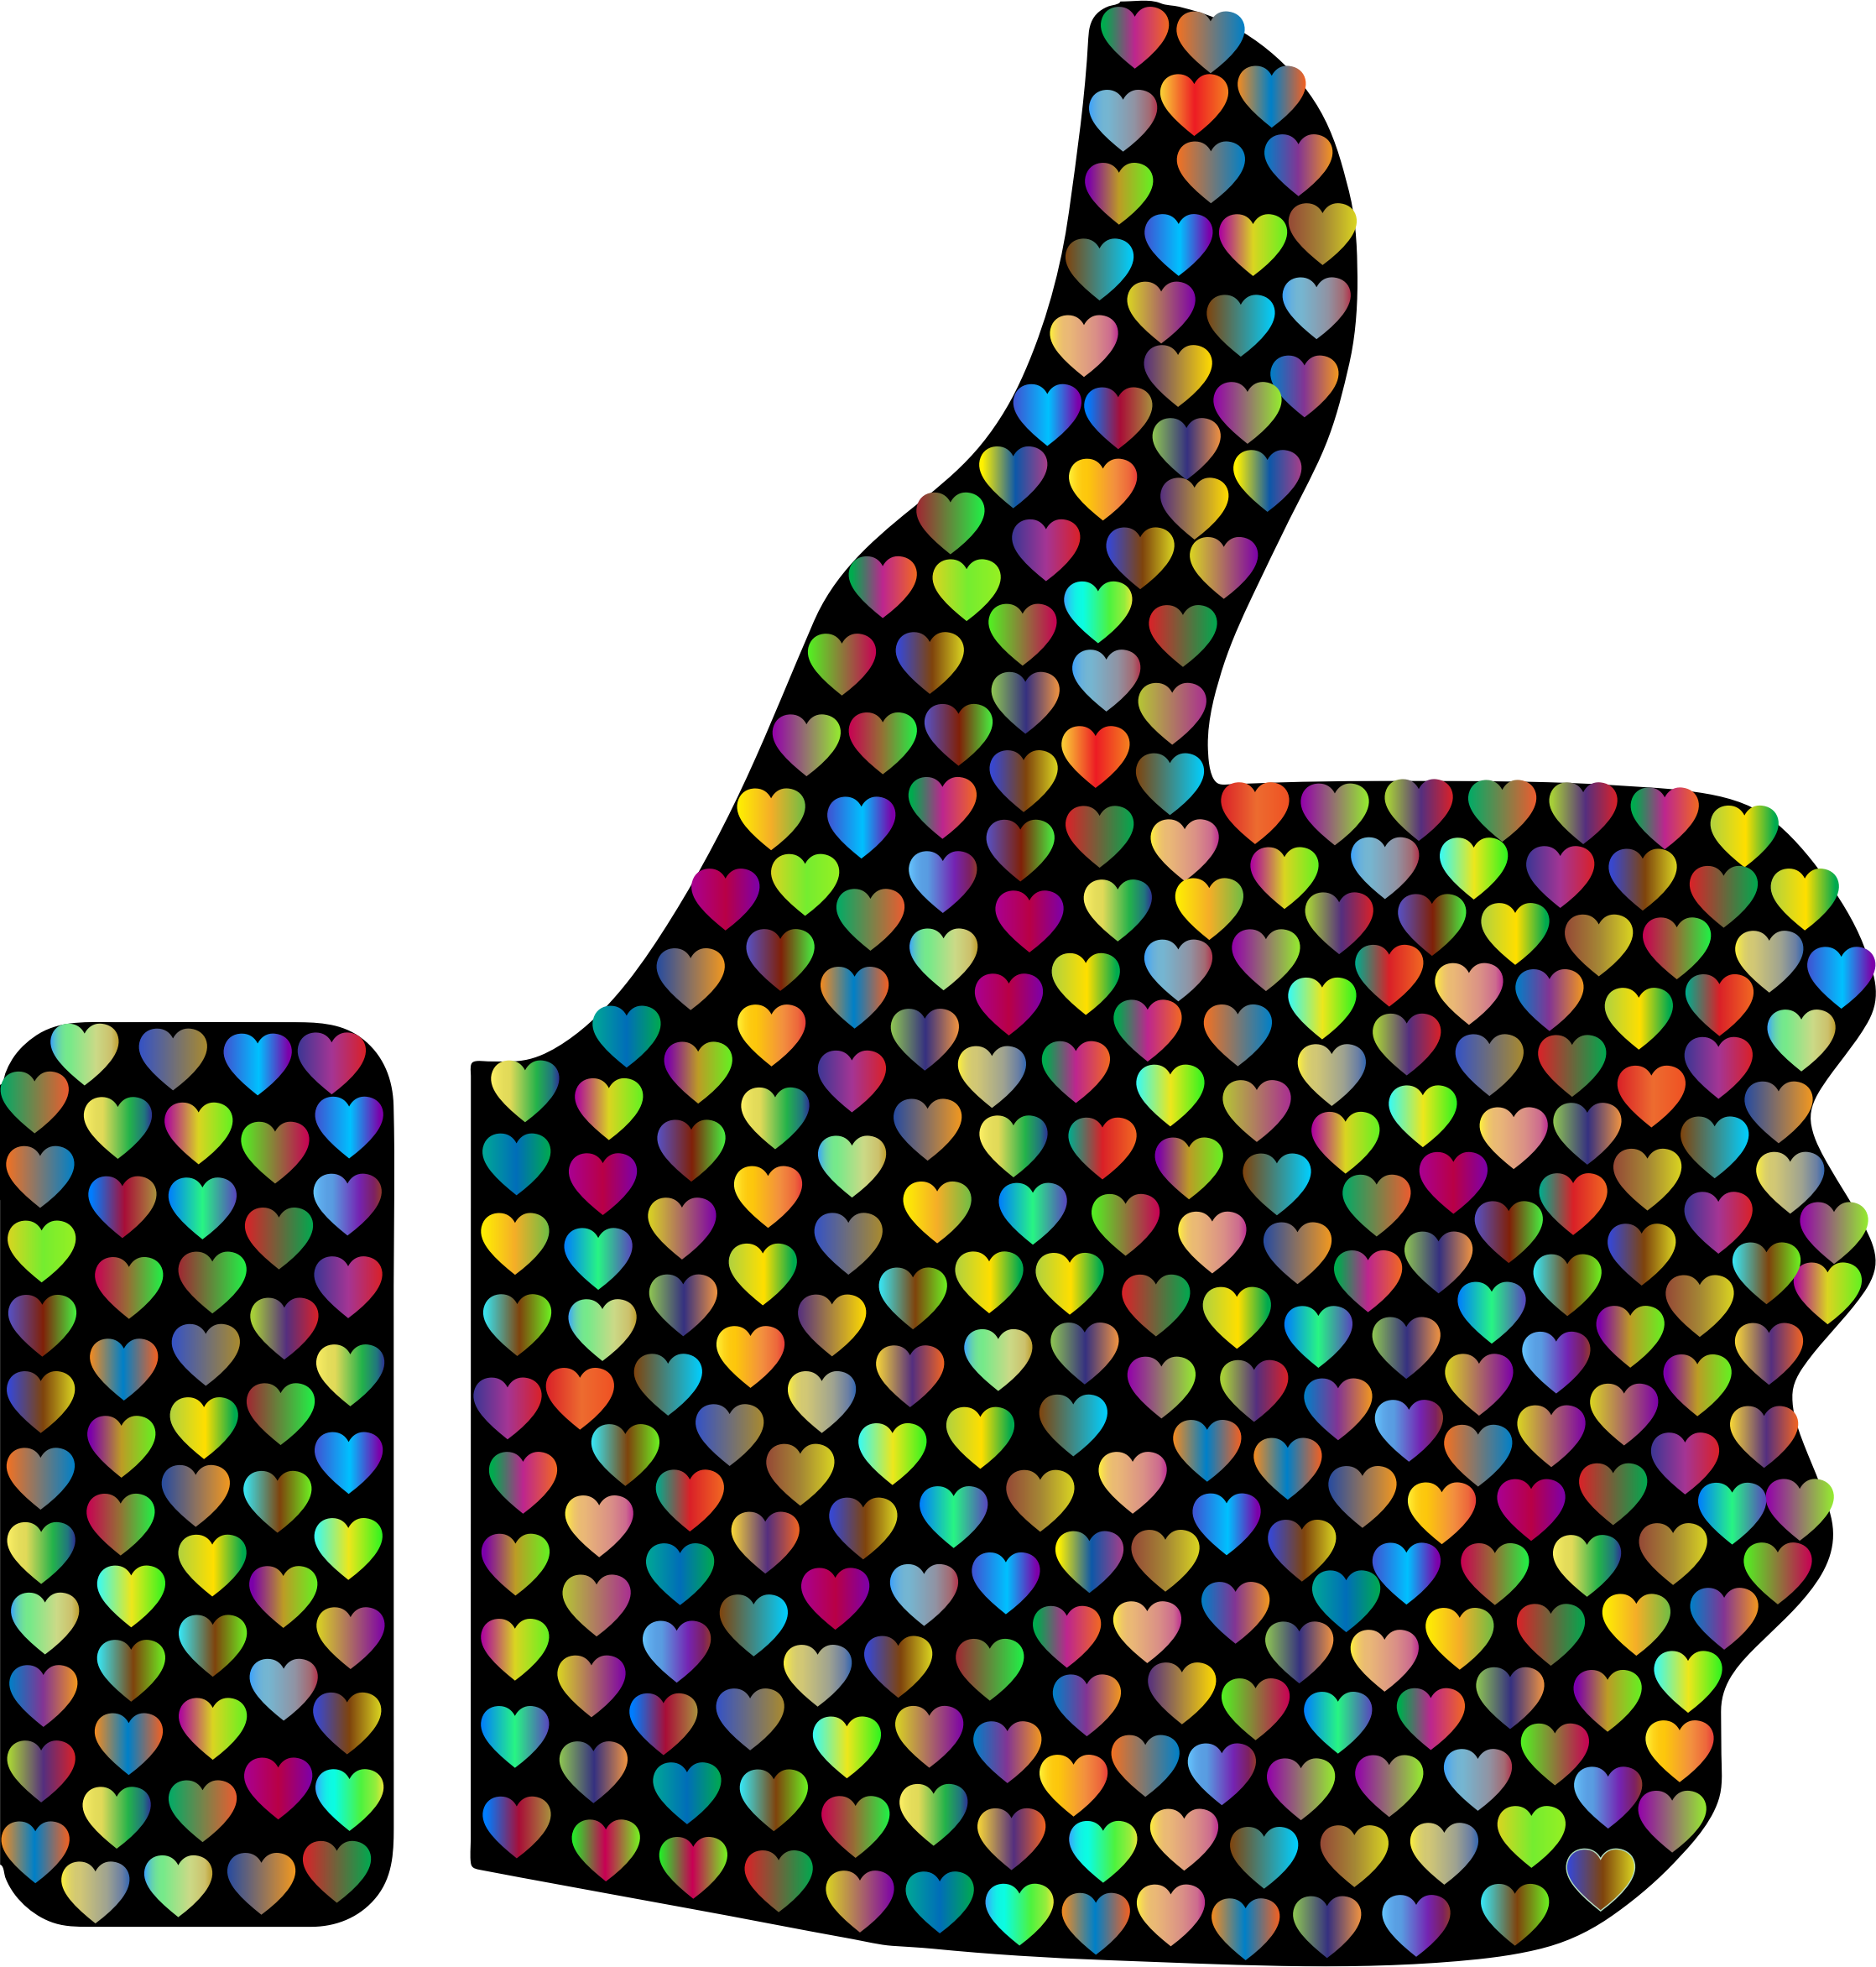 Clipart thumbs up silhouette. Prismatic hearts big image